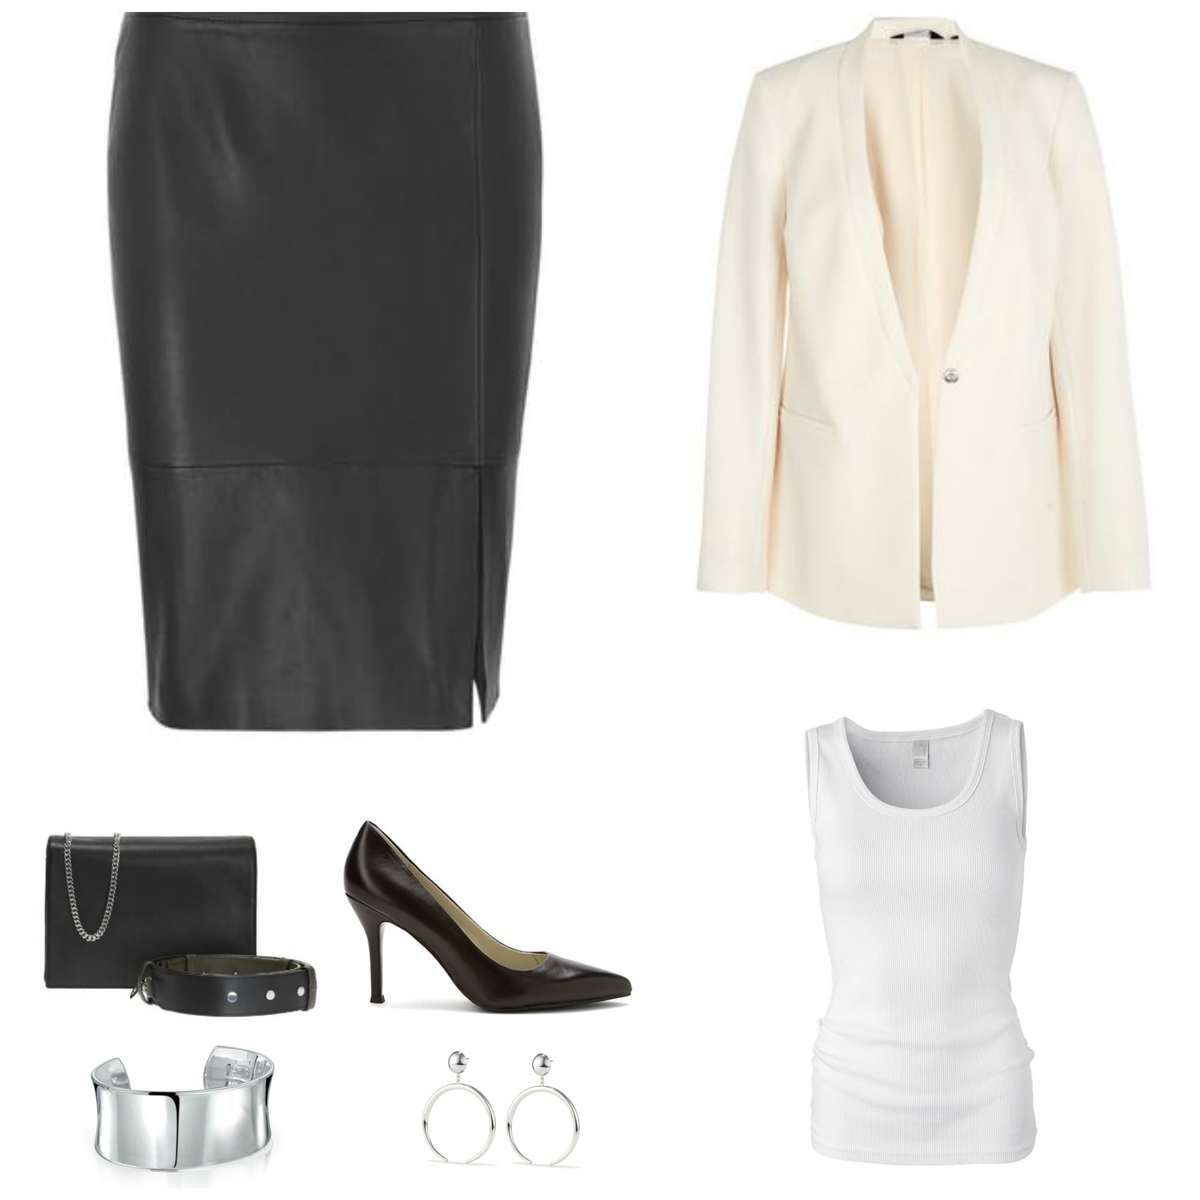 Image is of a leather pencil skirt styled with a cream blazer, white tank, black ALLSAINTS 'Zep' handbag, black Nine West pumps, a silver cuff bracelet, and the Factory Hoops from Jenny Bird in silver.